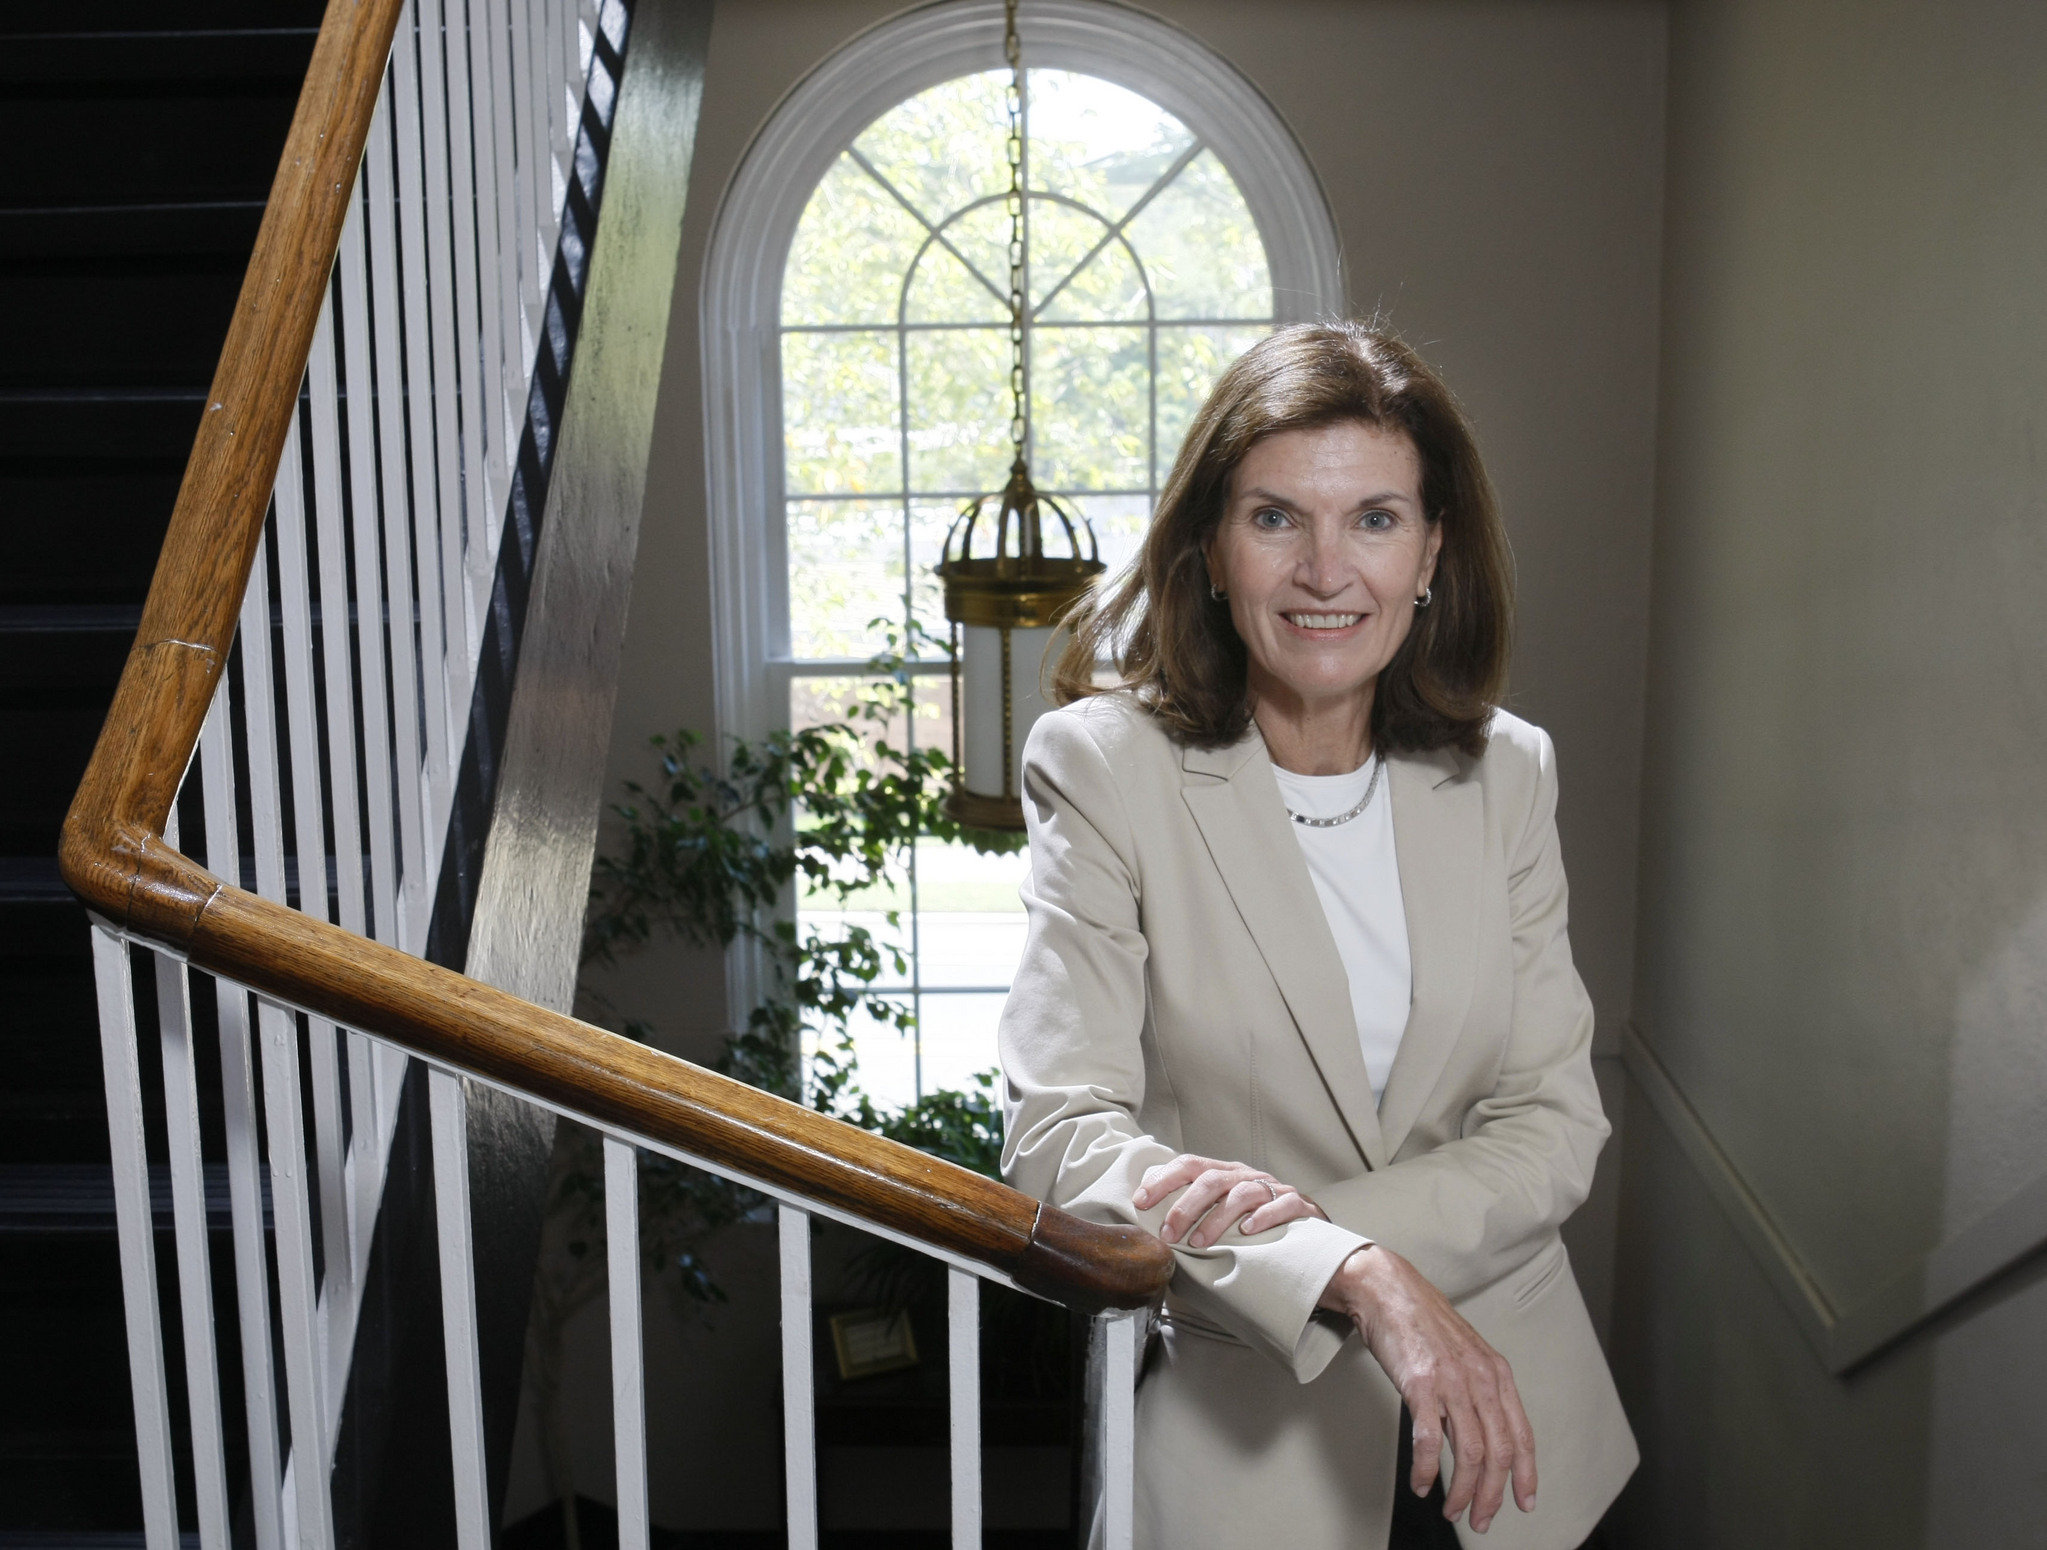 The first lady of Rutgers Wife of universitys new